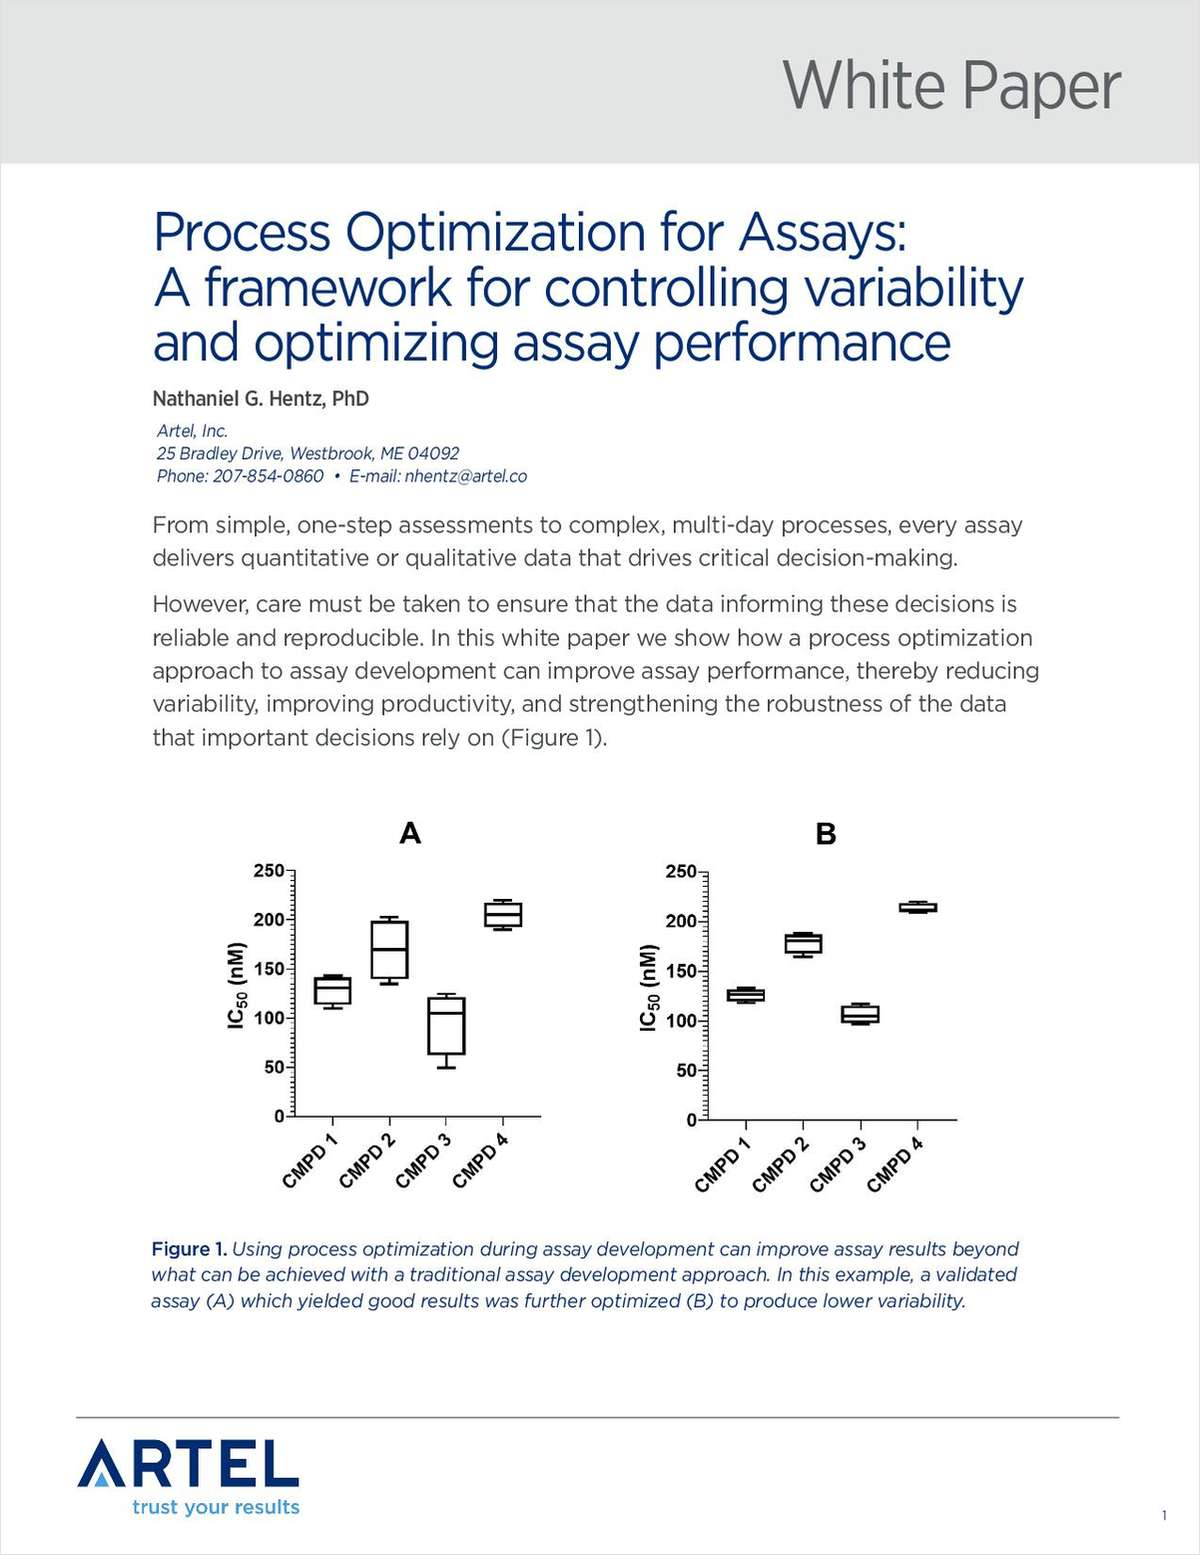 Process Optimization for Assays: A Framework for Controlling Variability and Optimizing Assay Performance